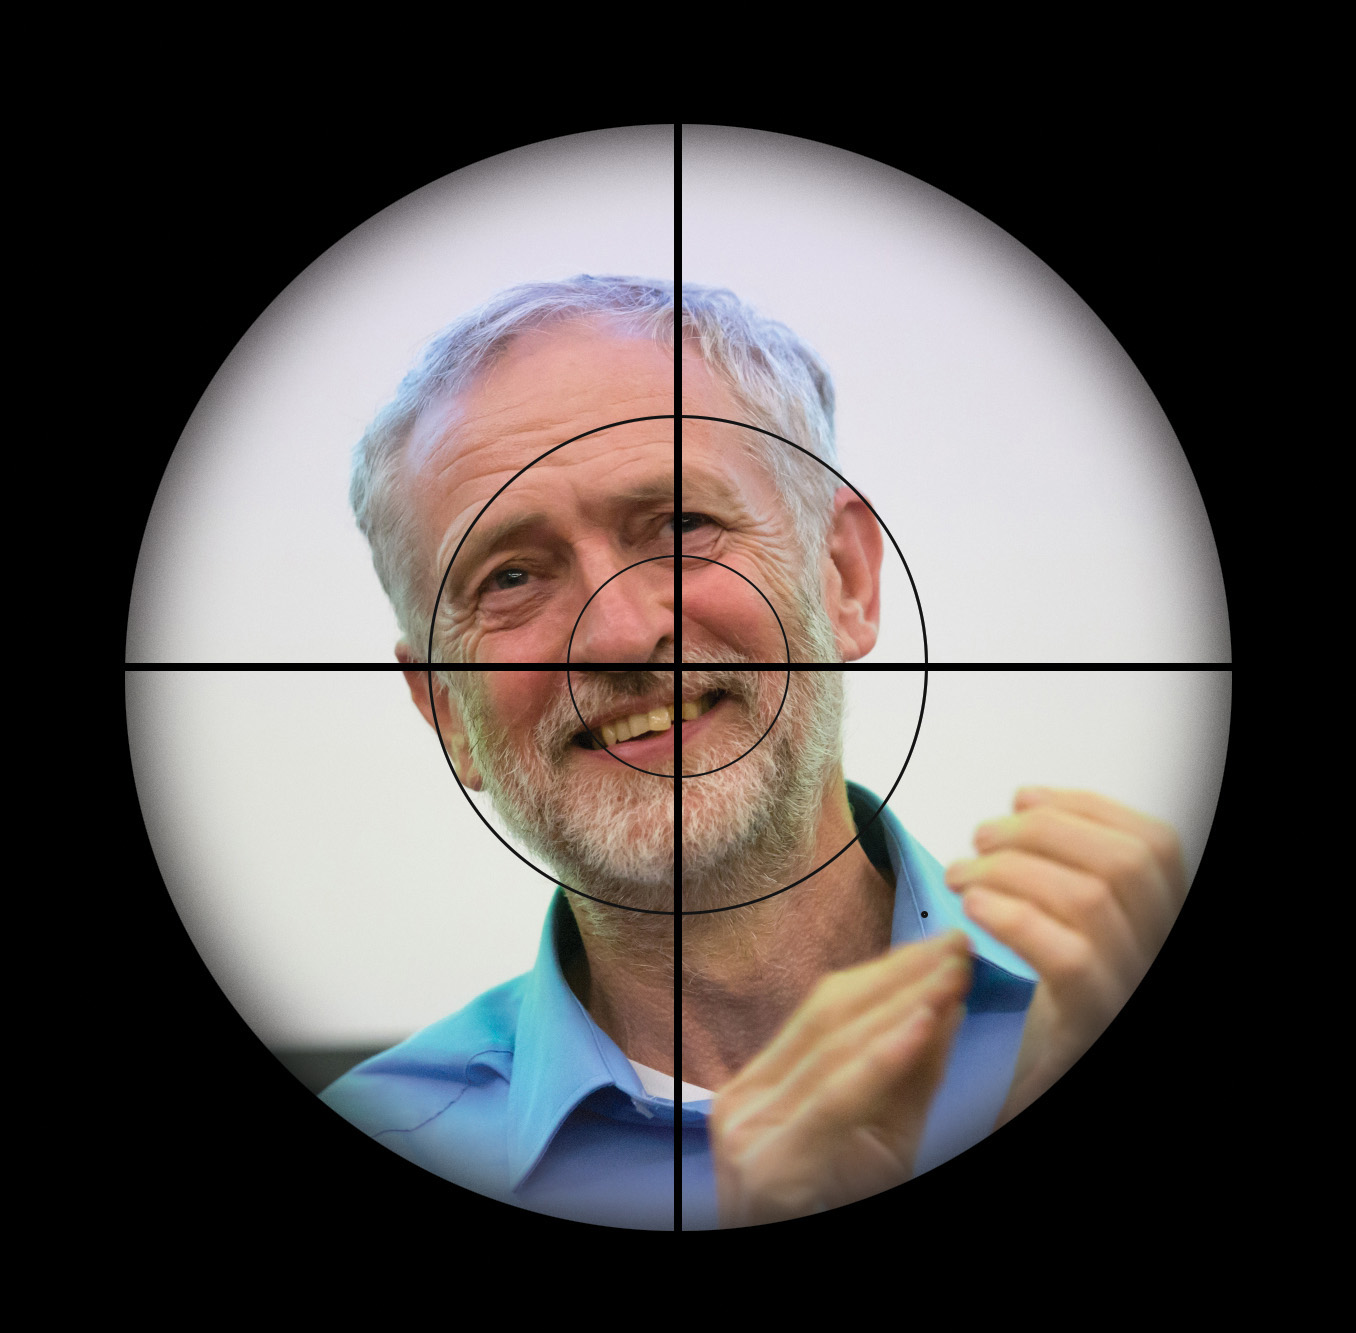 Jeremy Corbyn in the cross hairs